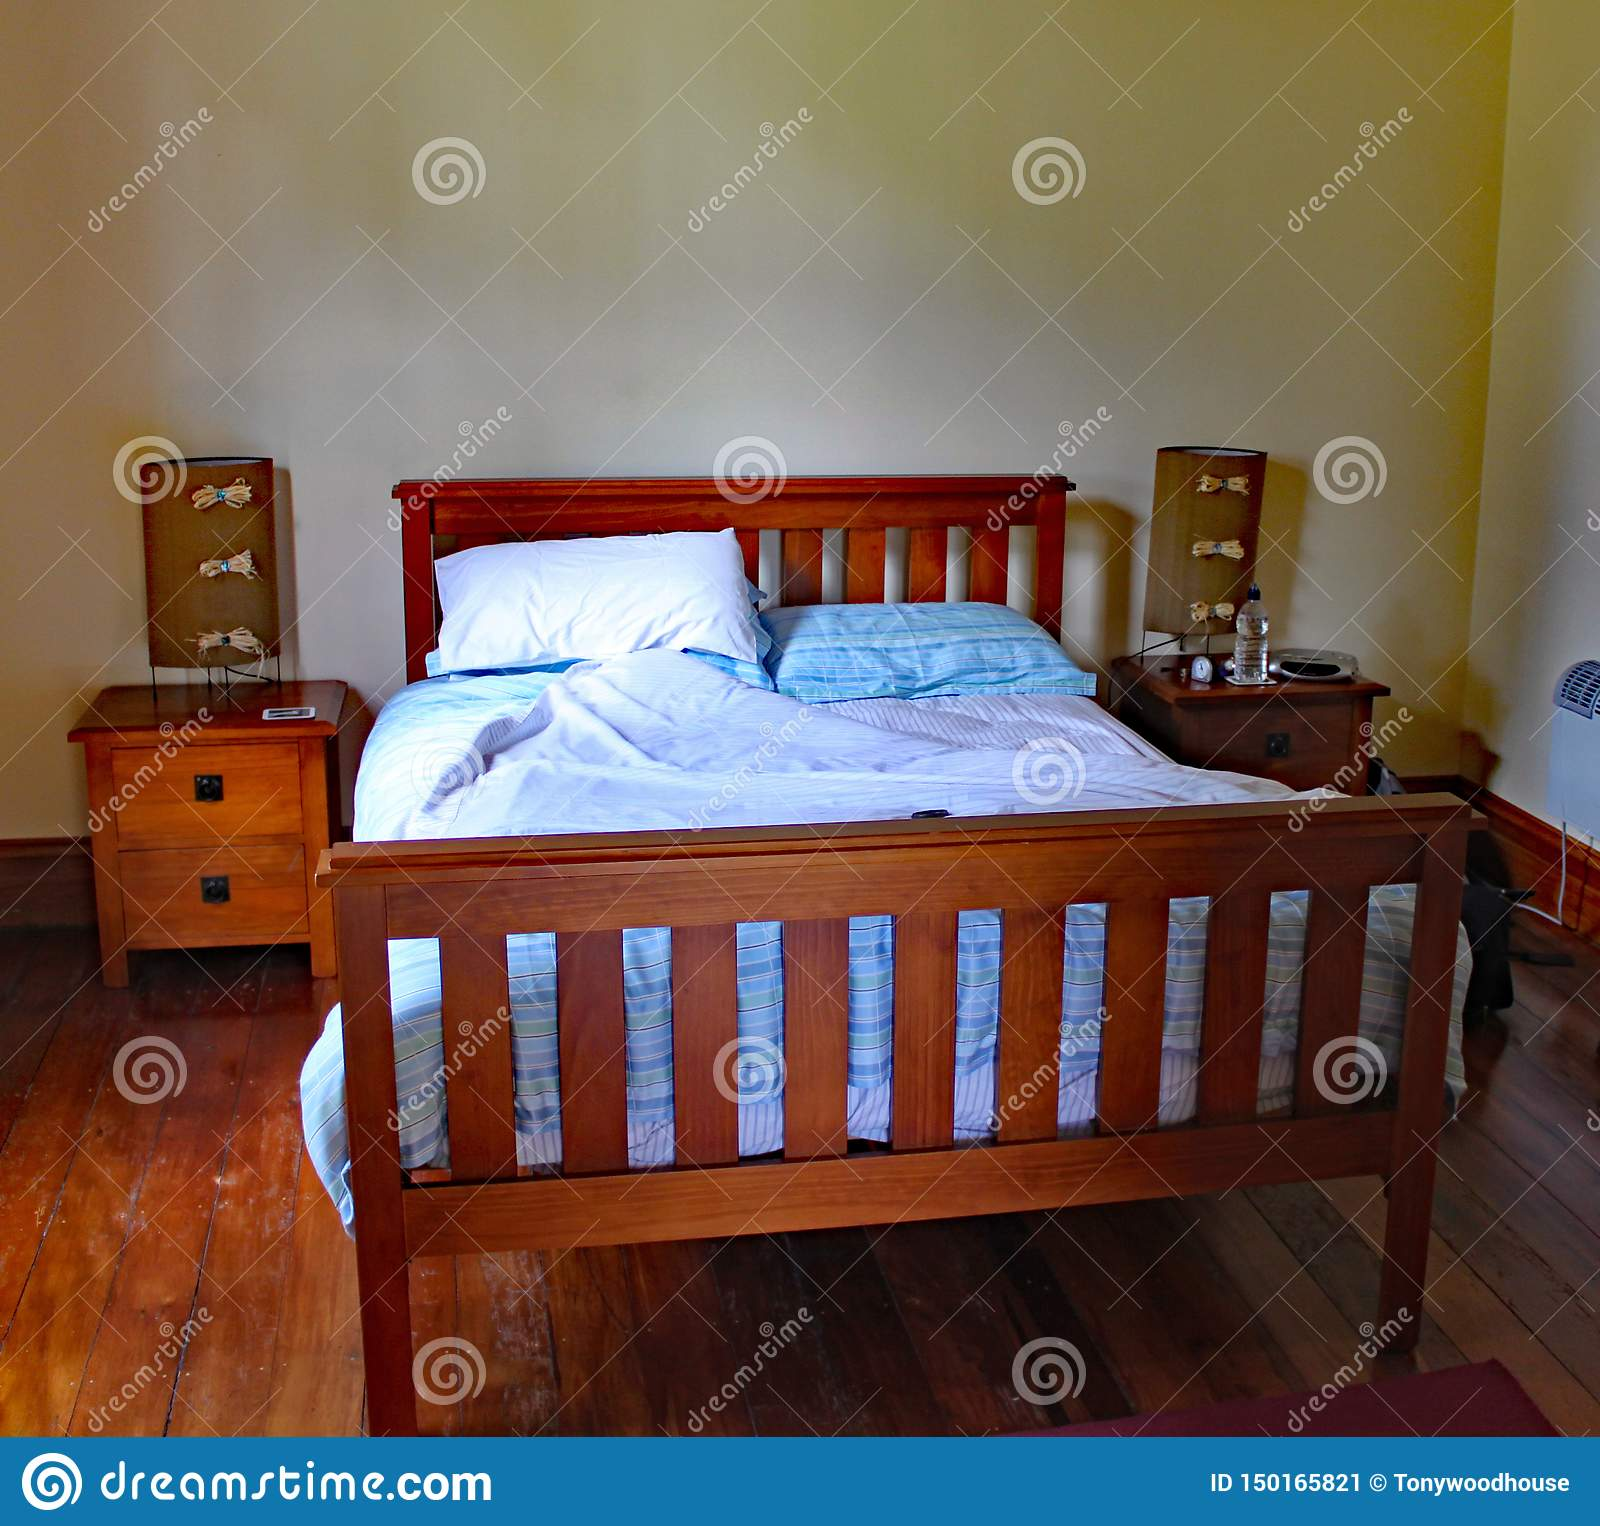 Wooden framed double bed in a quirky rental property in Masterton in New Zealand